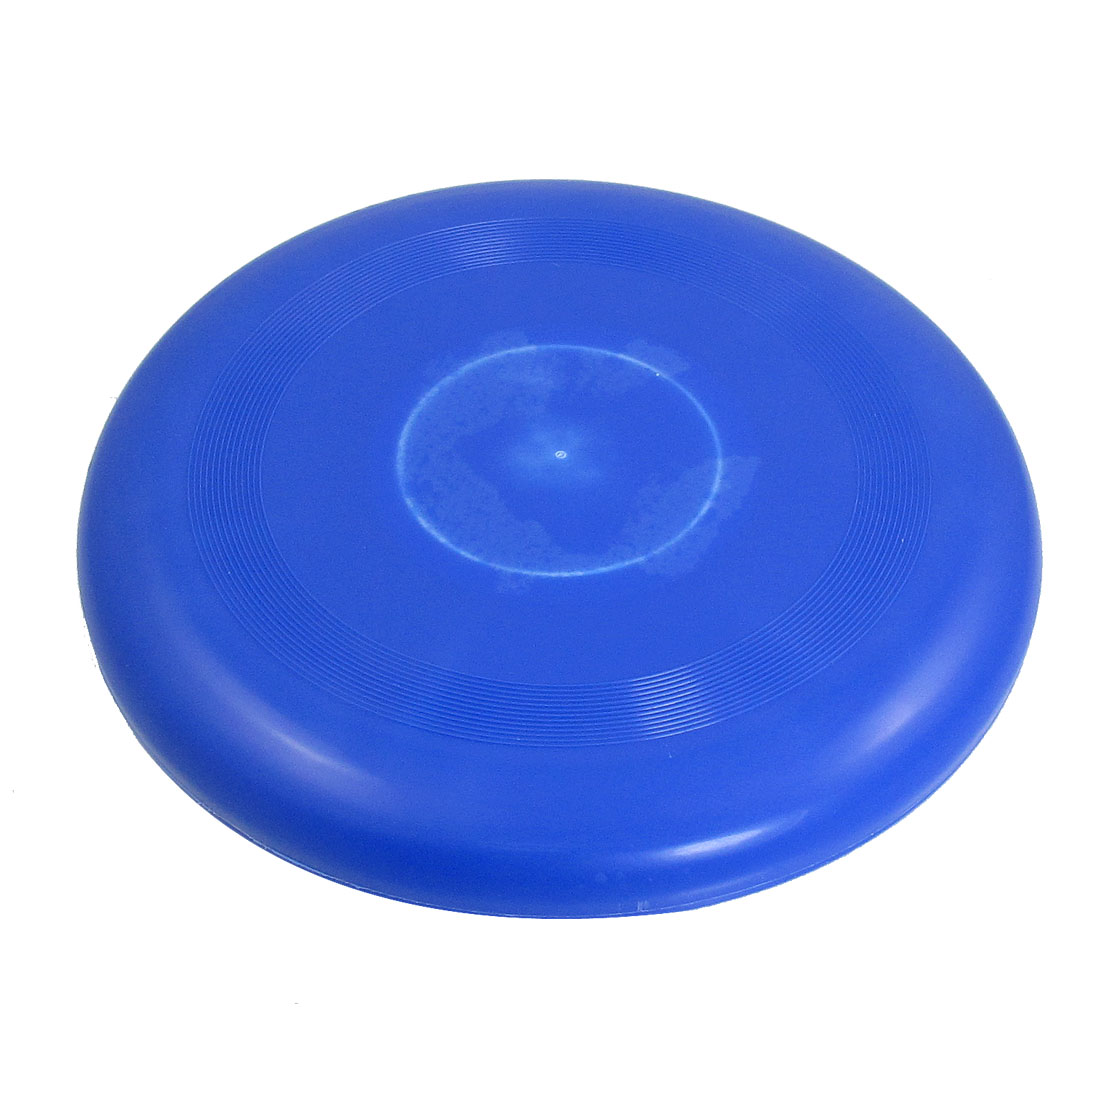 "Children Blue Plastic 9.2"" Dia Flying Round Disc Frisbee Toy"